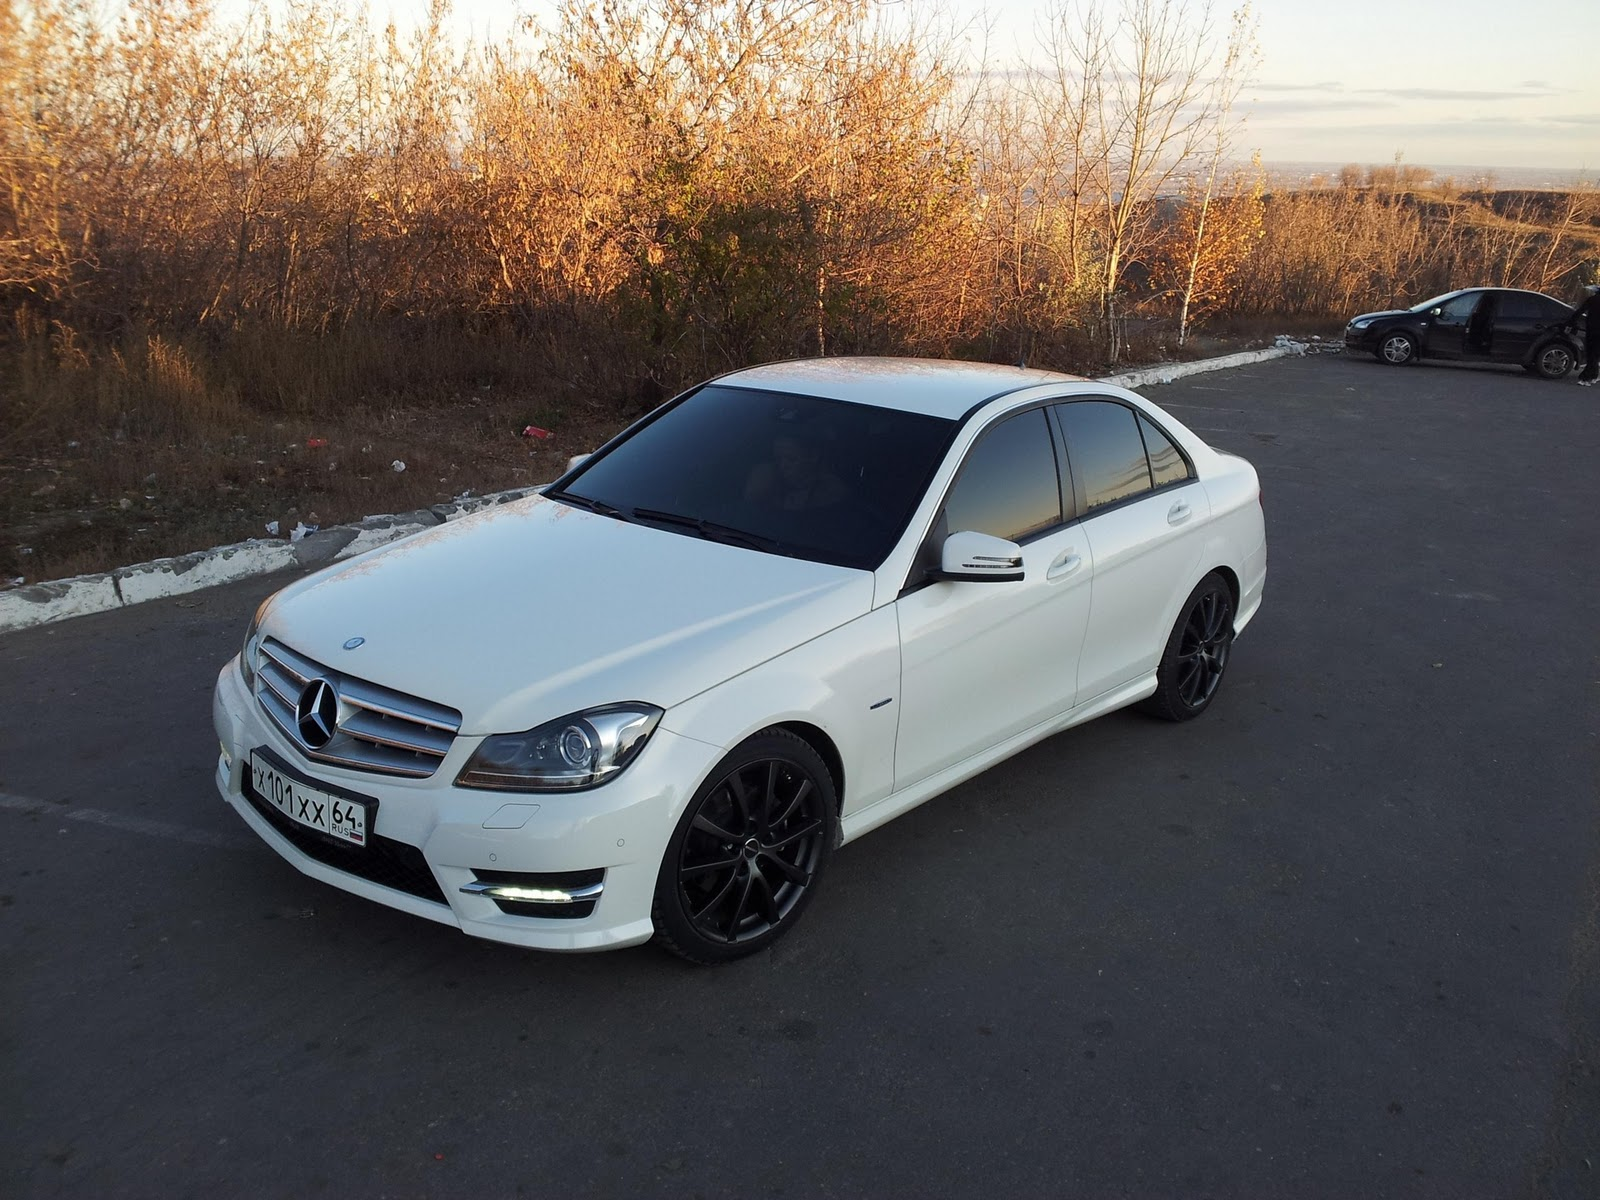 Benztuning mercedes benz c class w204 on r18 borbet wheels for Mercedes benz rims c300